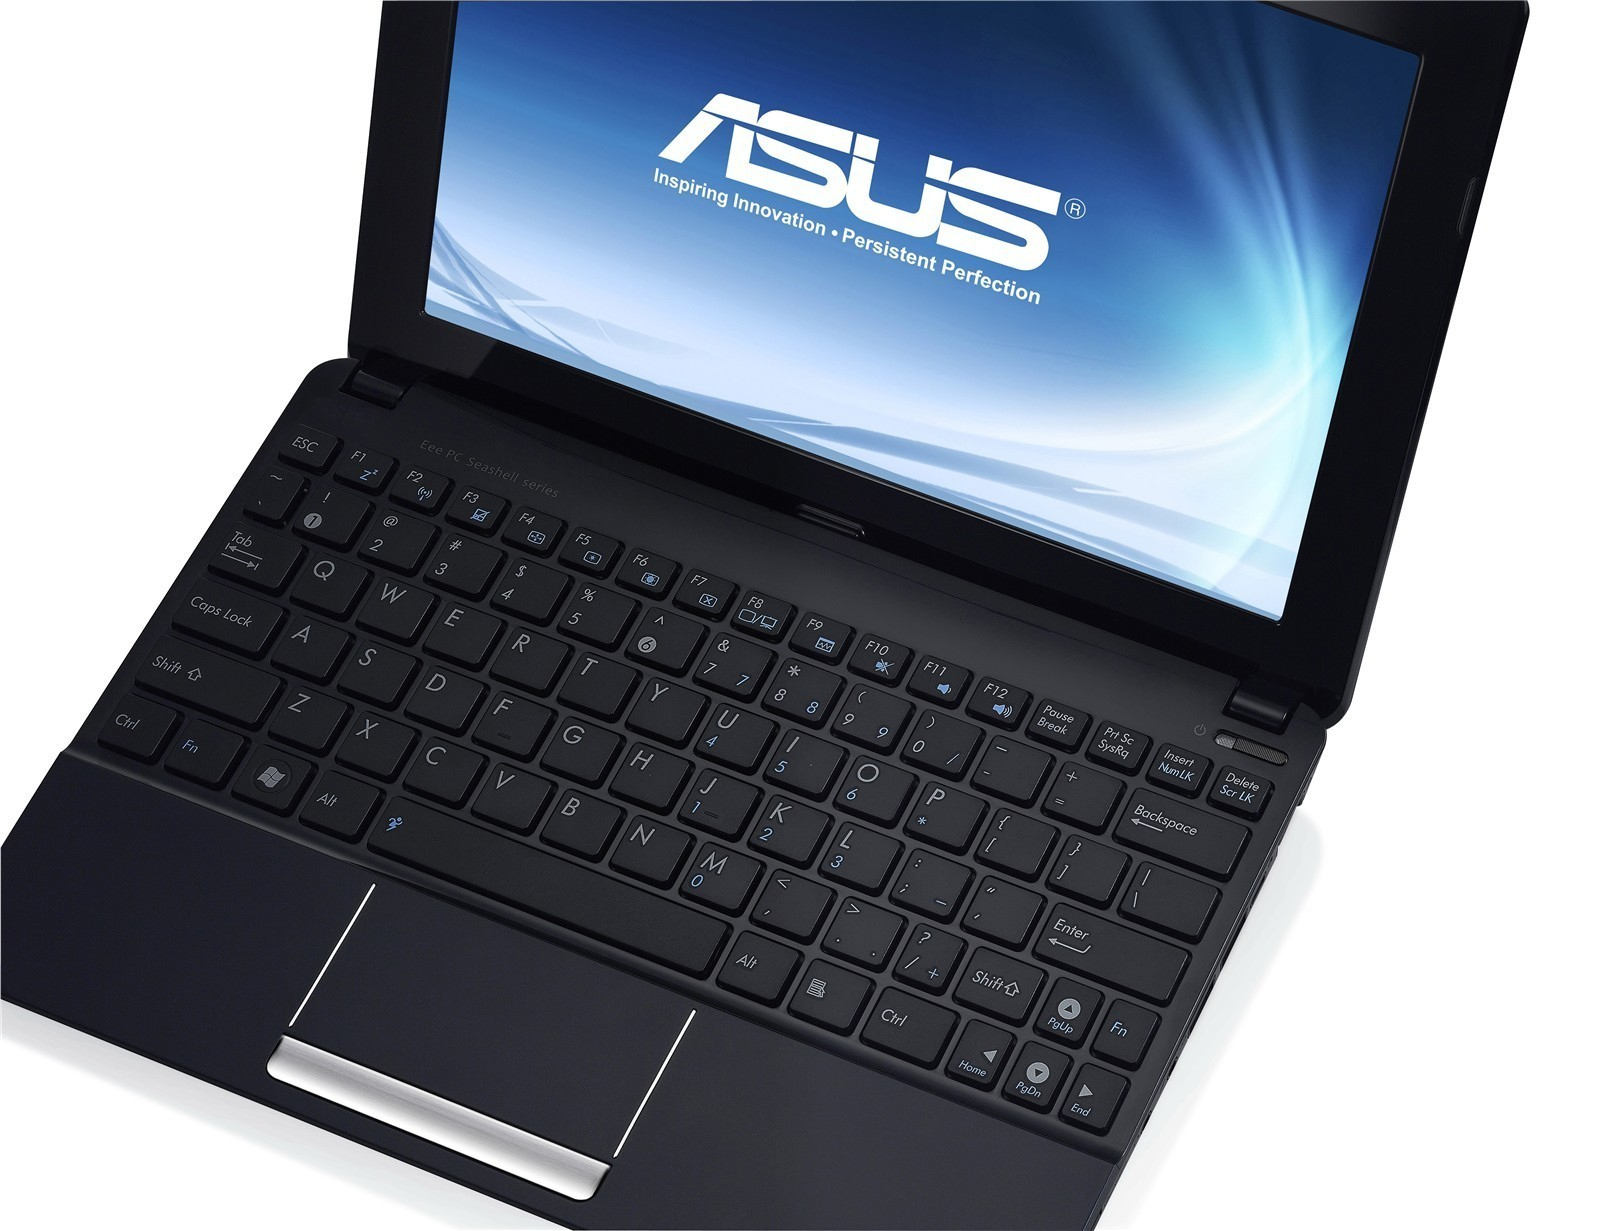 Asus Eee PC 1011CX Netbook Drivers for Windows Download